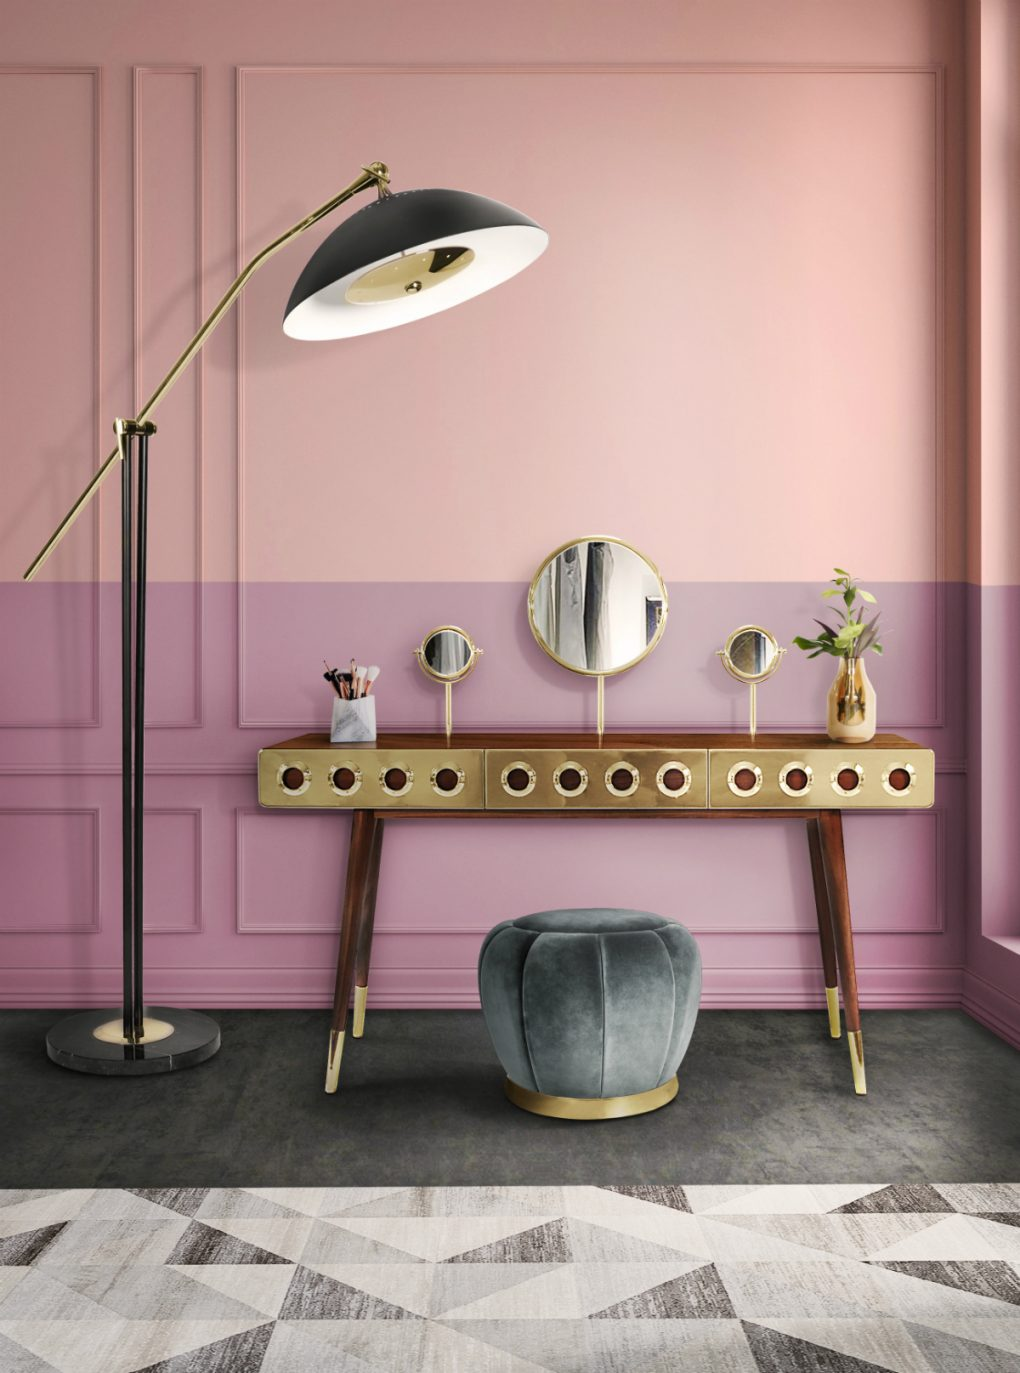 Color Week Inspirations: Pink Monday Color Week Inspiration: Pink Monday Mood Board The Ultimate Pink Shade for a Modern Home Decor 15